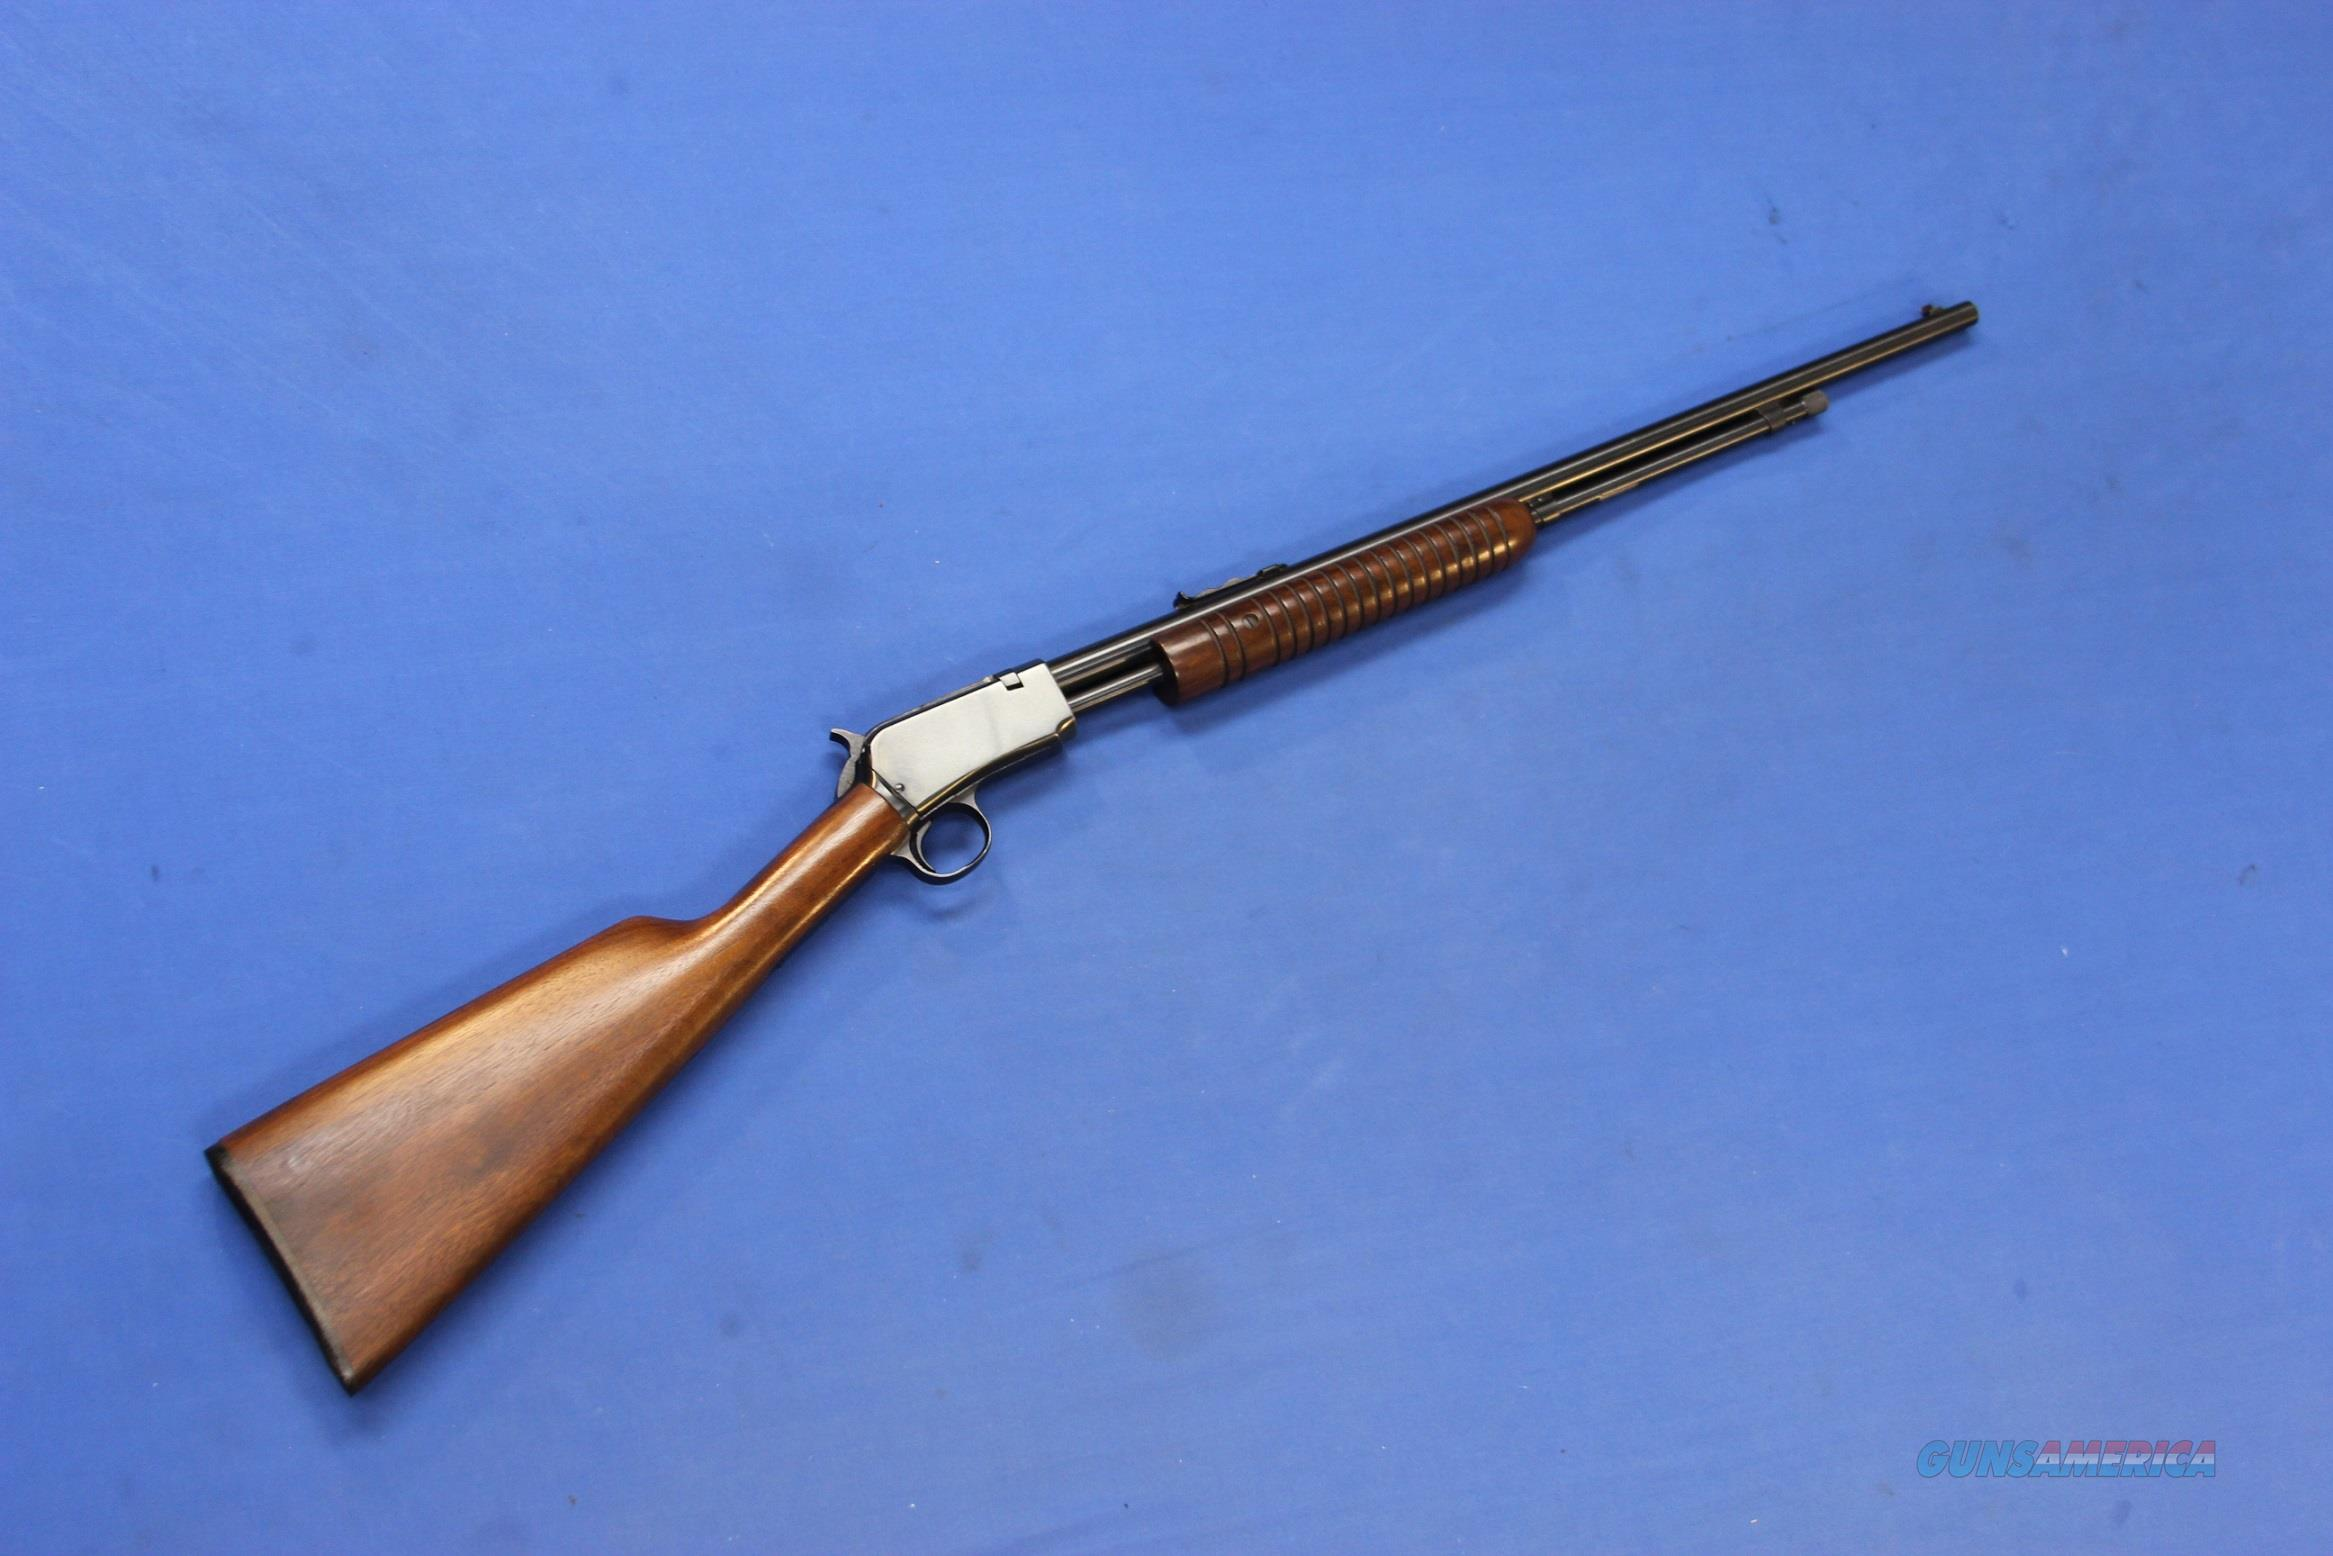 WINCHESTER 62A PUMP ACTION .22 LR - VERY NICE   Guns > Rifles > Winchester Rifles - Modern Pump